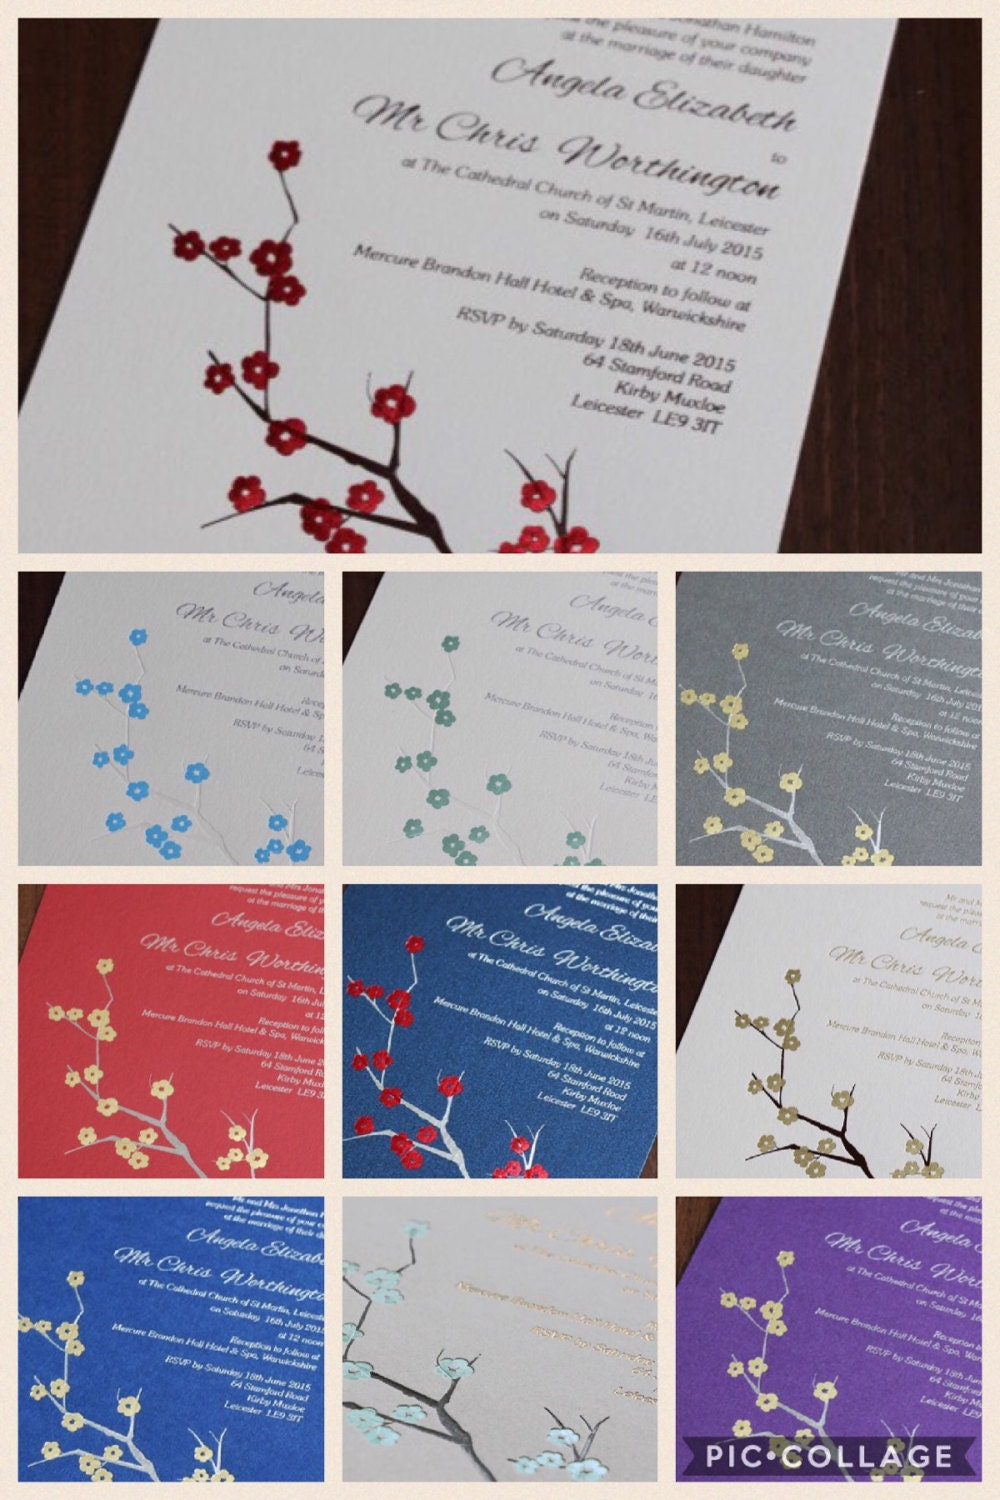 Wedding Invitation foiled - cherry blossom design - Flat A5 size ...